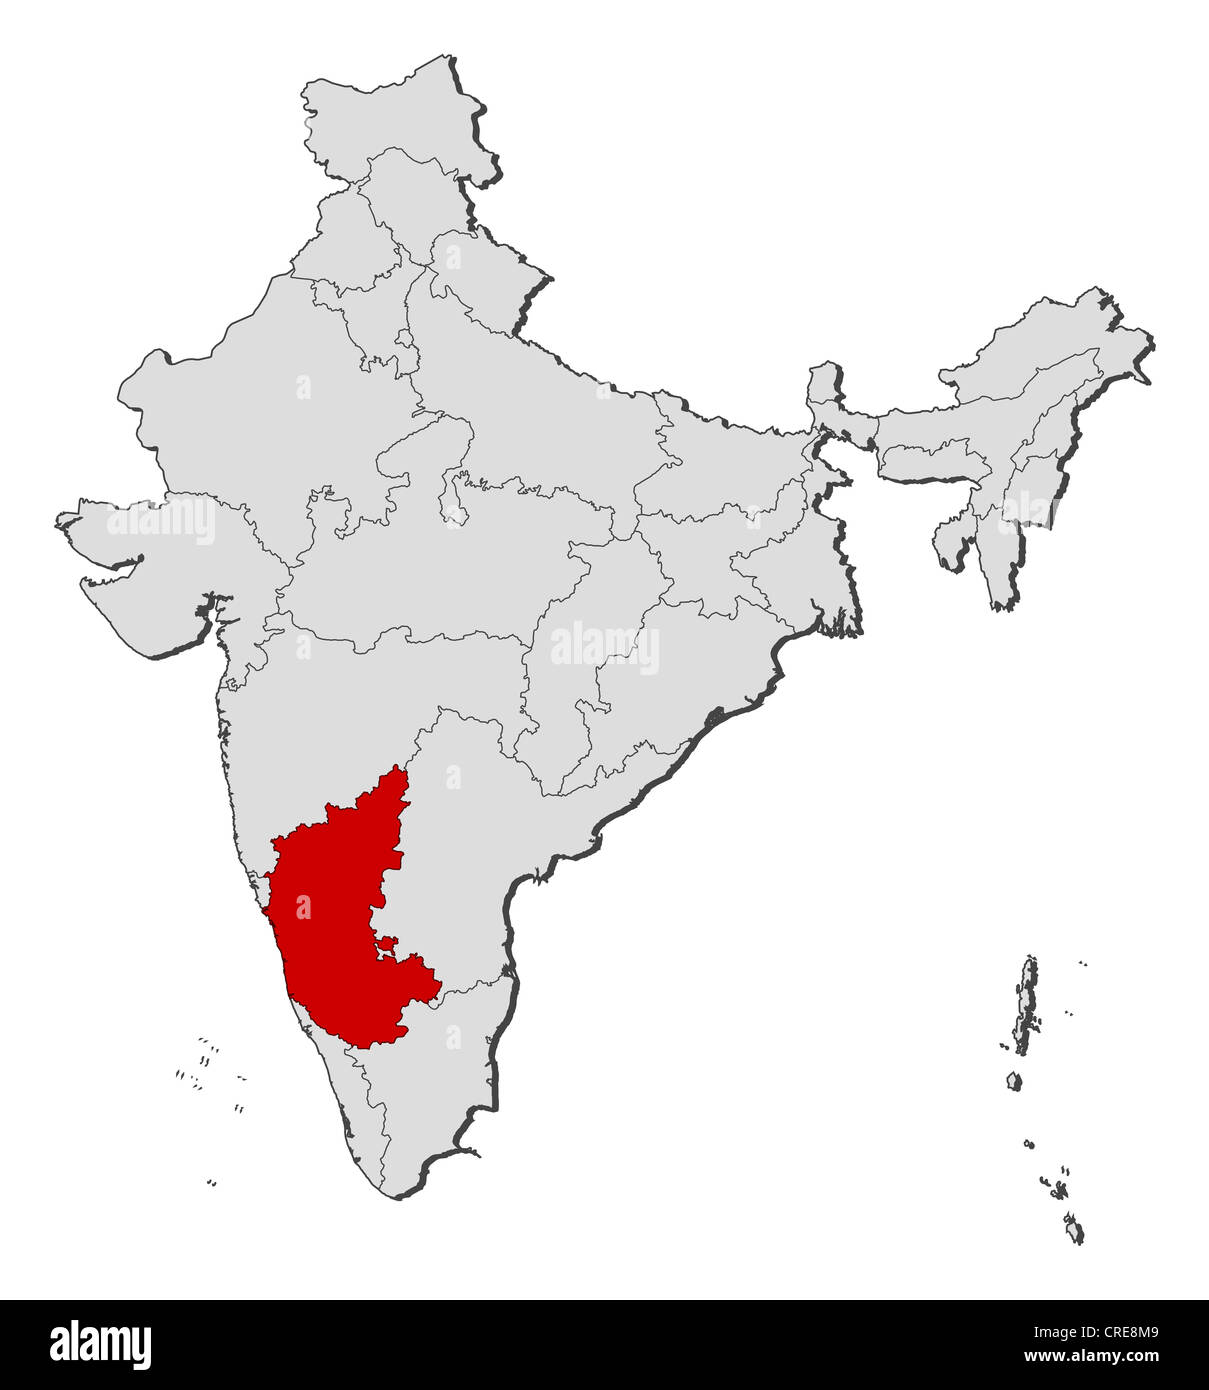 India Political Map With States on united states map no states, india and bangladesh, india map with city, white us map with states, map showing all states, india map with himalayan mountains, germany map german states, india provinces states, india big cities and states, telangana india map with states, india bangalore palace, 2014 right to work states, india map with just states, india map with state boundaries, india map with word, us map with capitals 50 states, map of india with states, red vs. blue states map states, punjab map with states, india and its states,